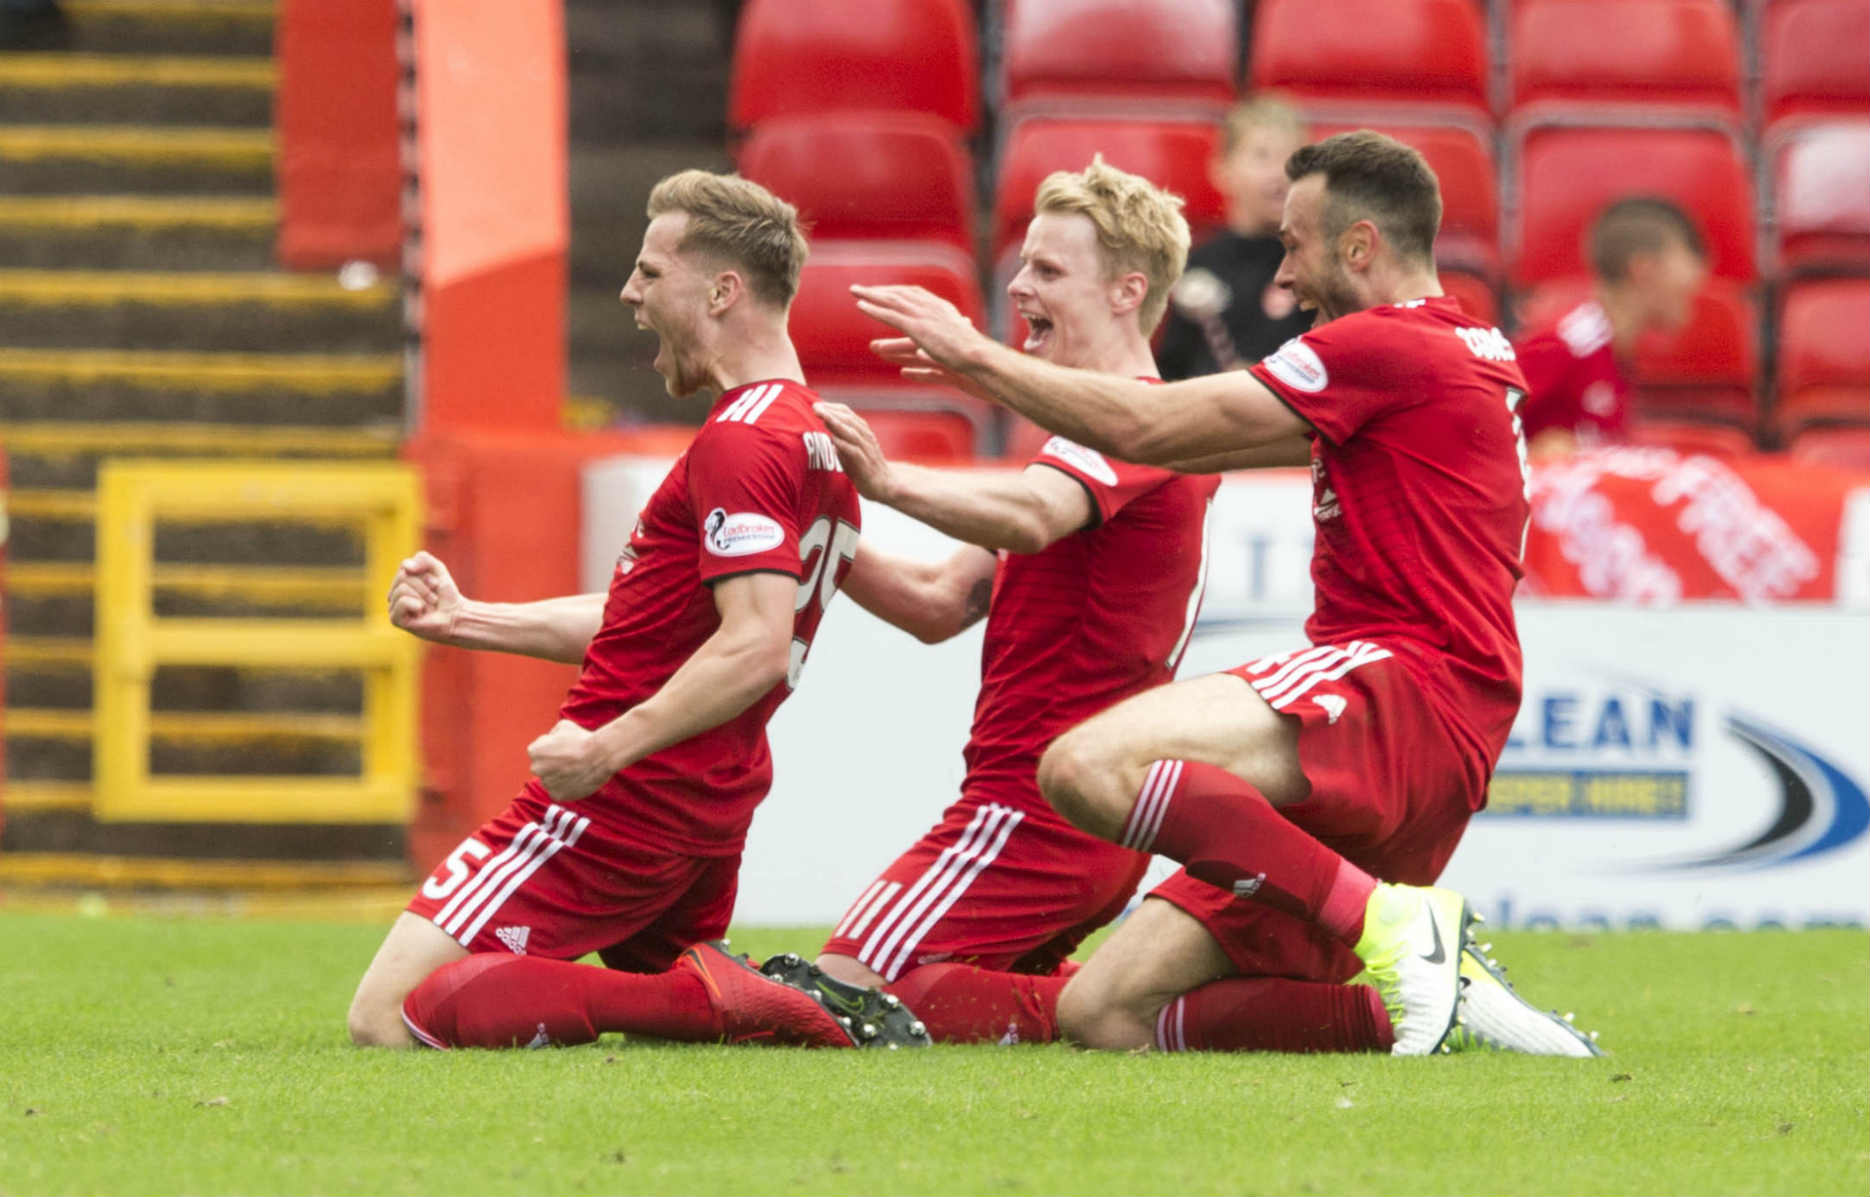 Celtic aberdeen betting preview south africa online sports betting